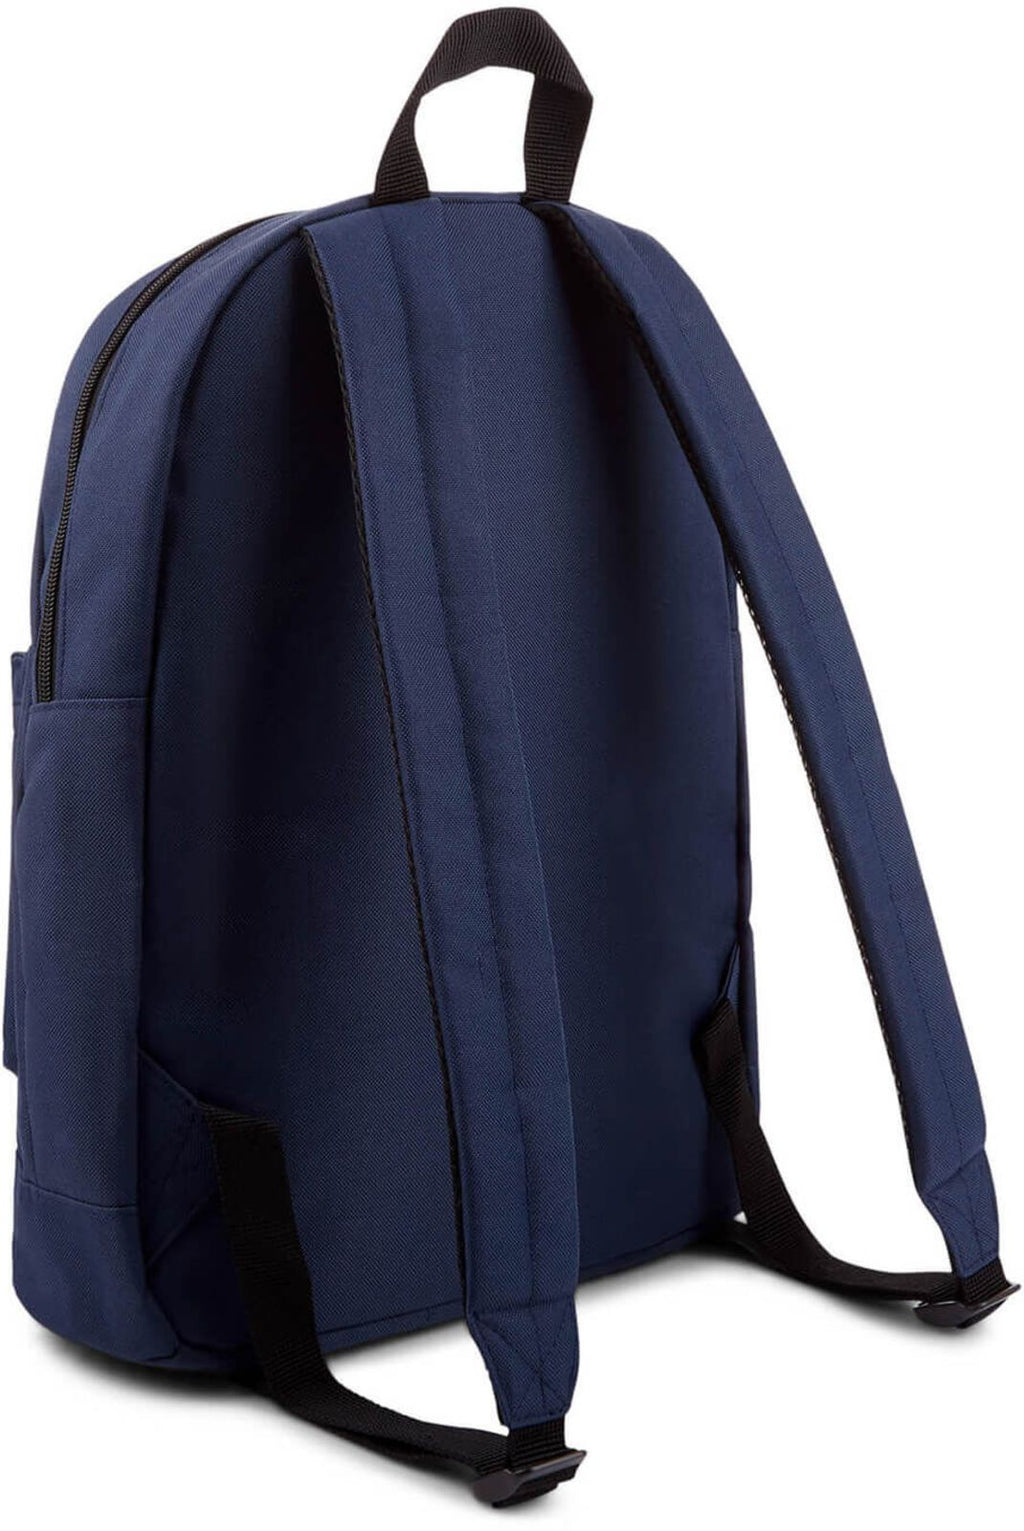 Lyle & Scott Backpack Bag Navy